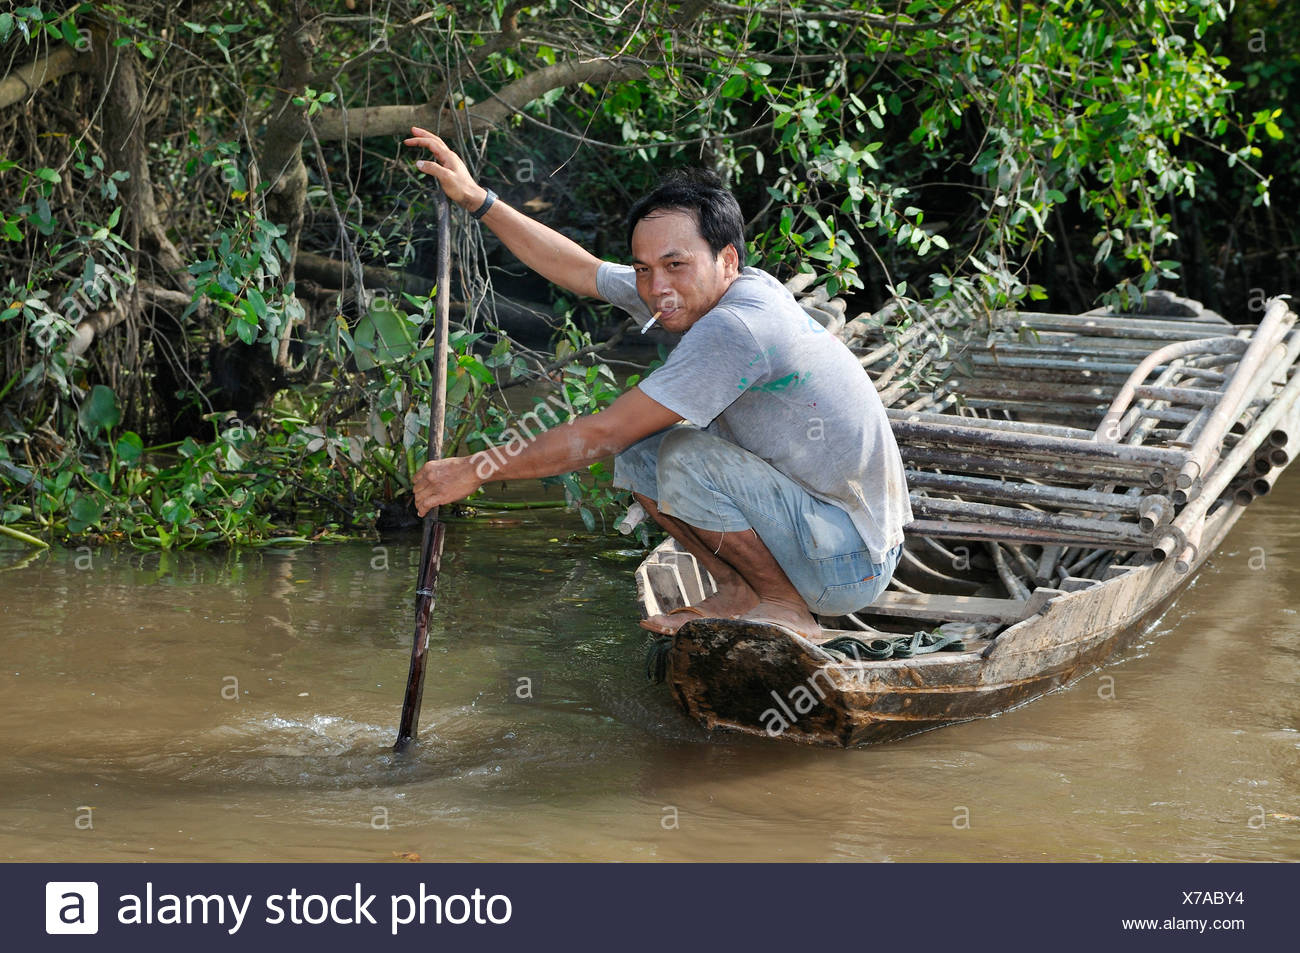 Man rowing a wooden boat, Mekong Delta, Vietnam, Asia - Stock Image